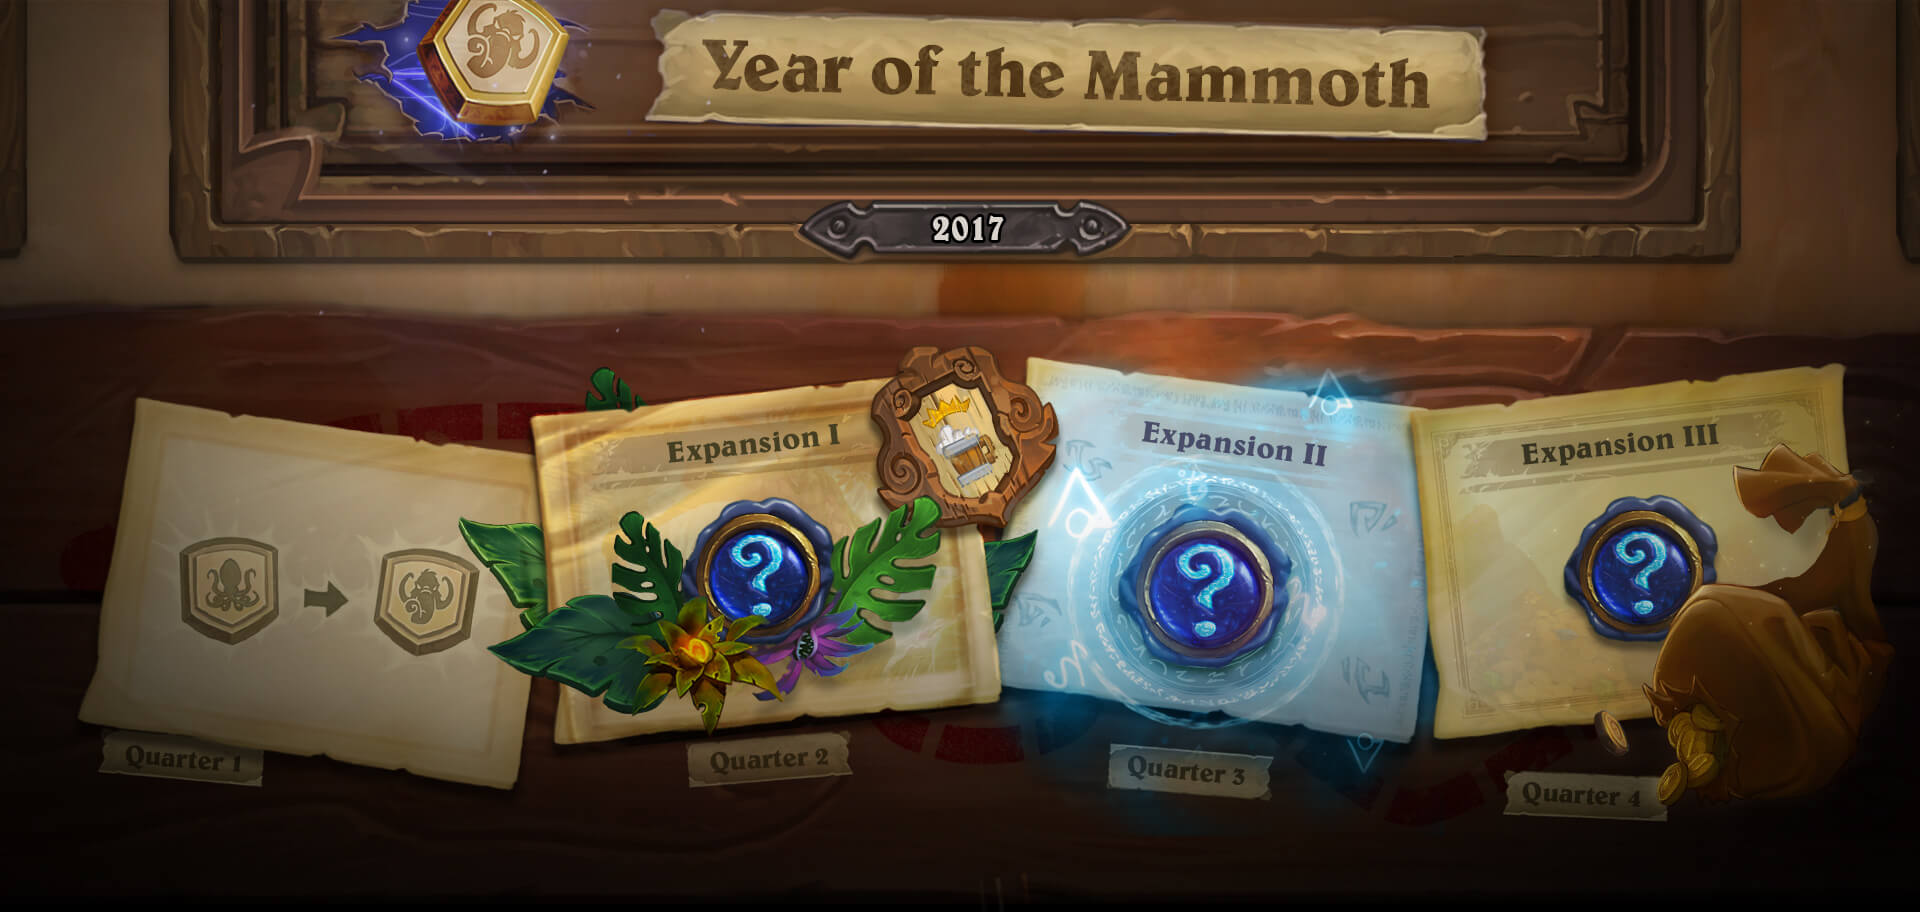 Hearthstone's 2017 timeline.